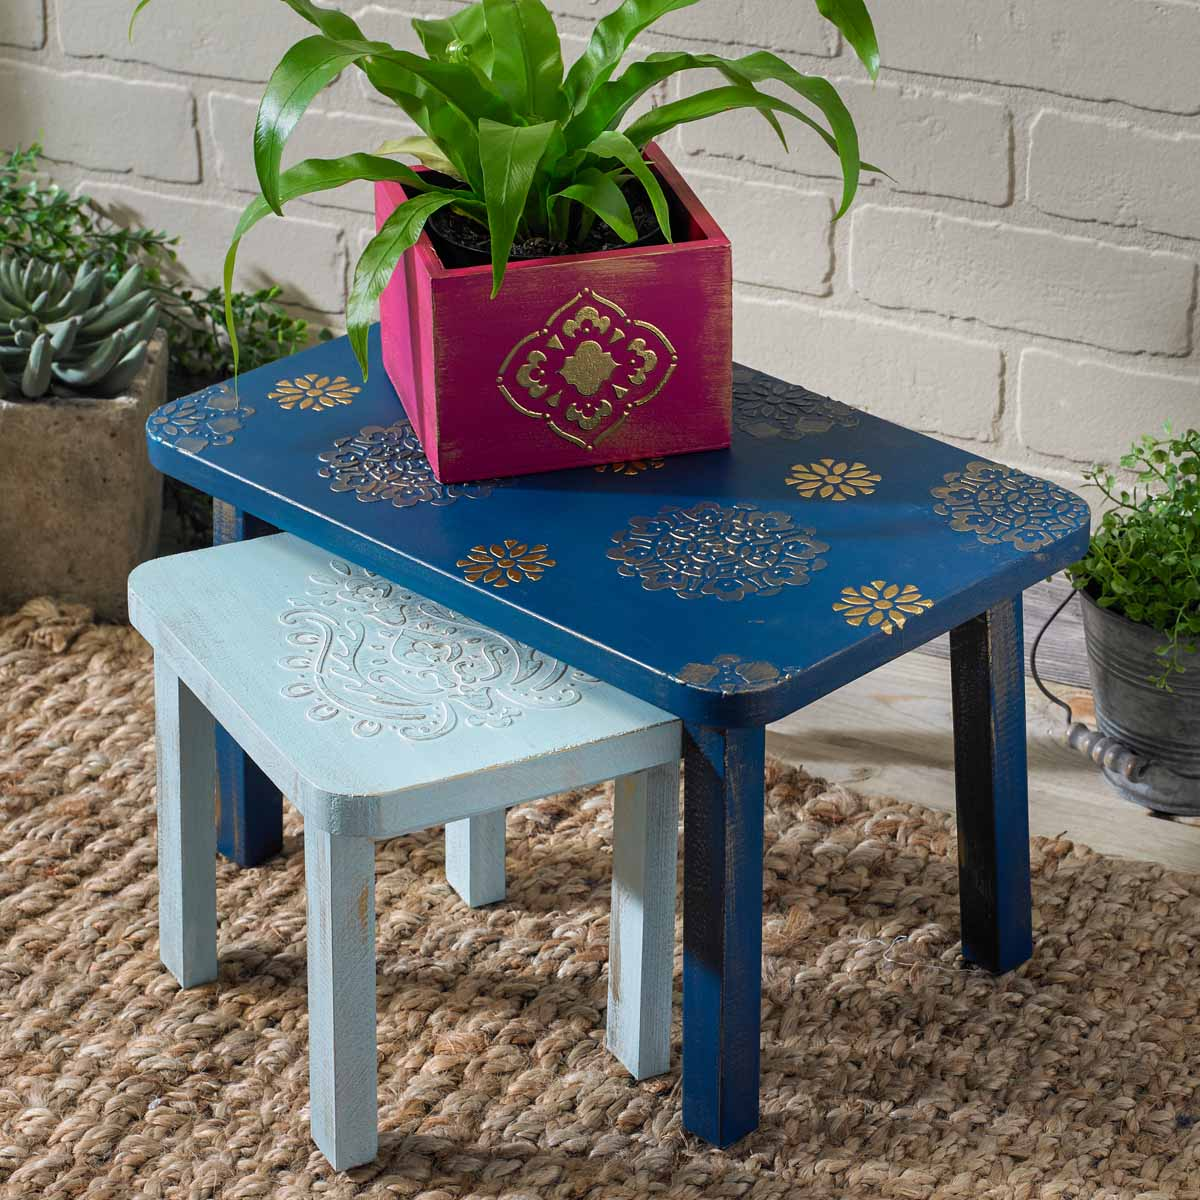 Dimensional Gold Stenciled Table and Planter